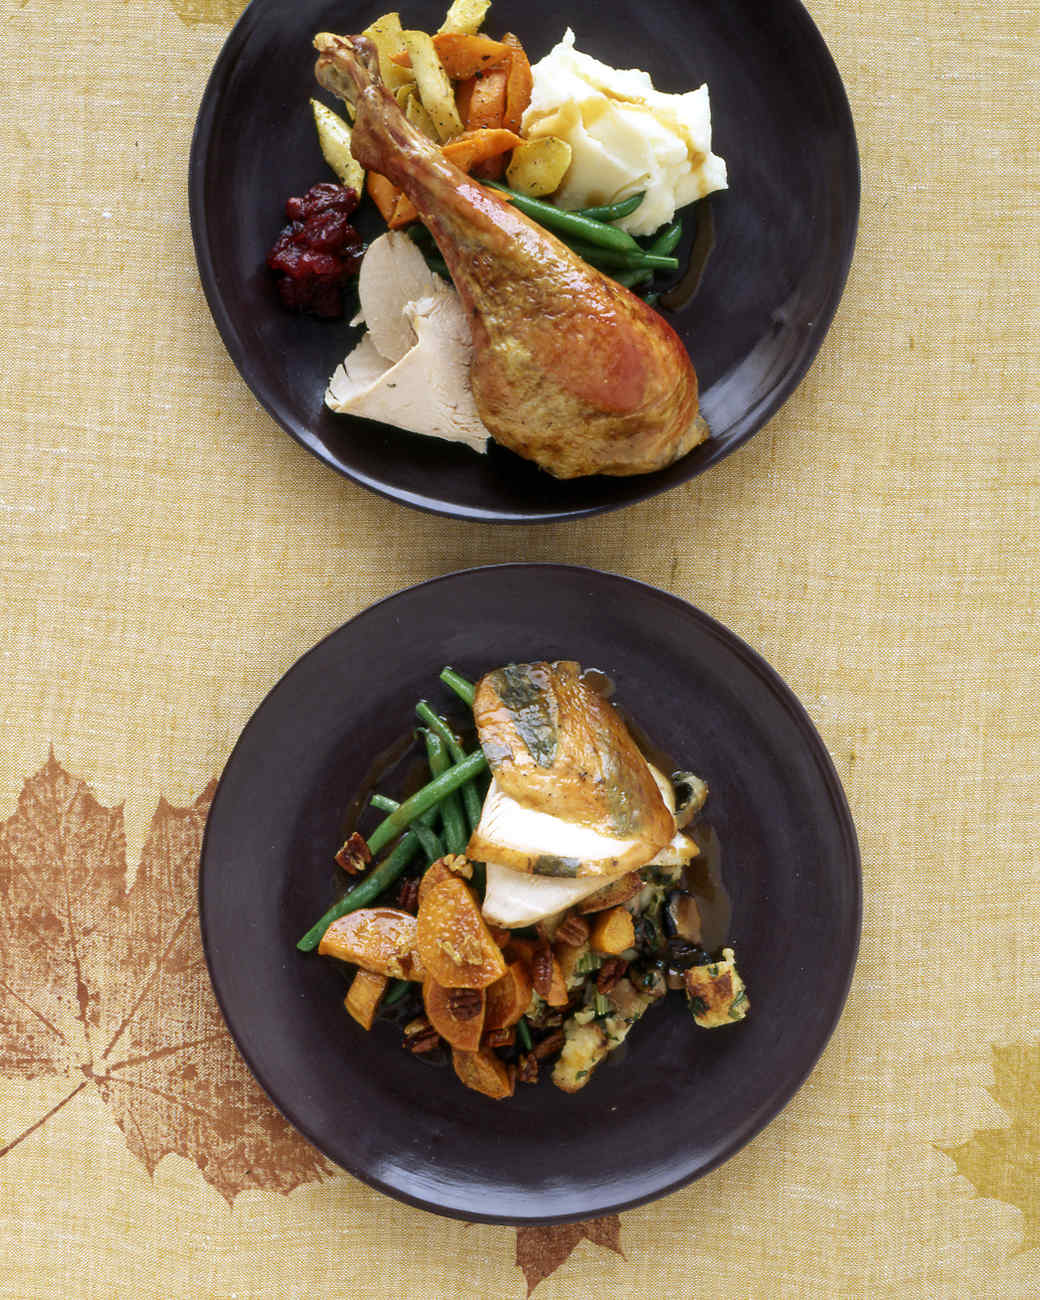 Roast Turkey With Sage and Mushroom Stuffing